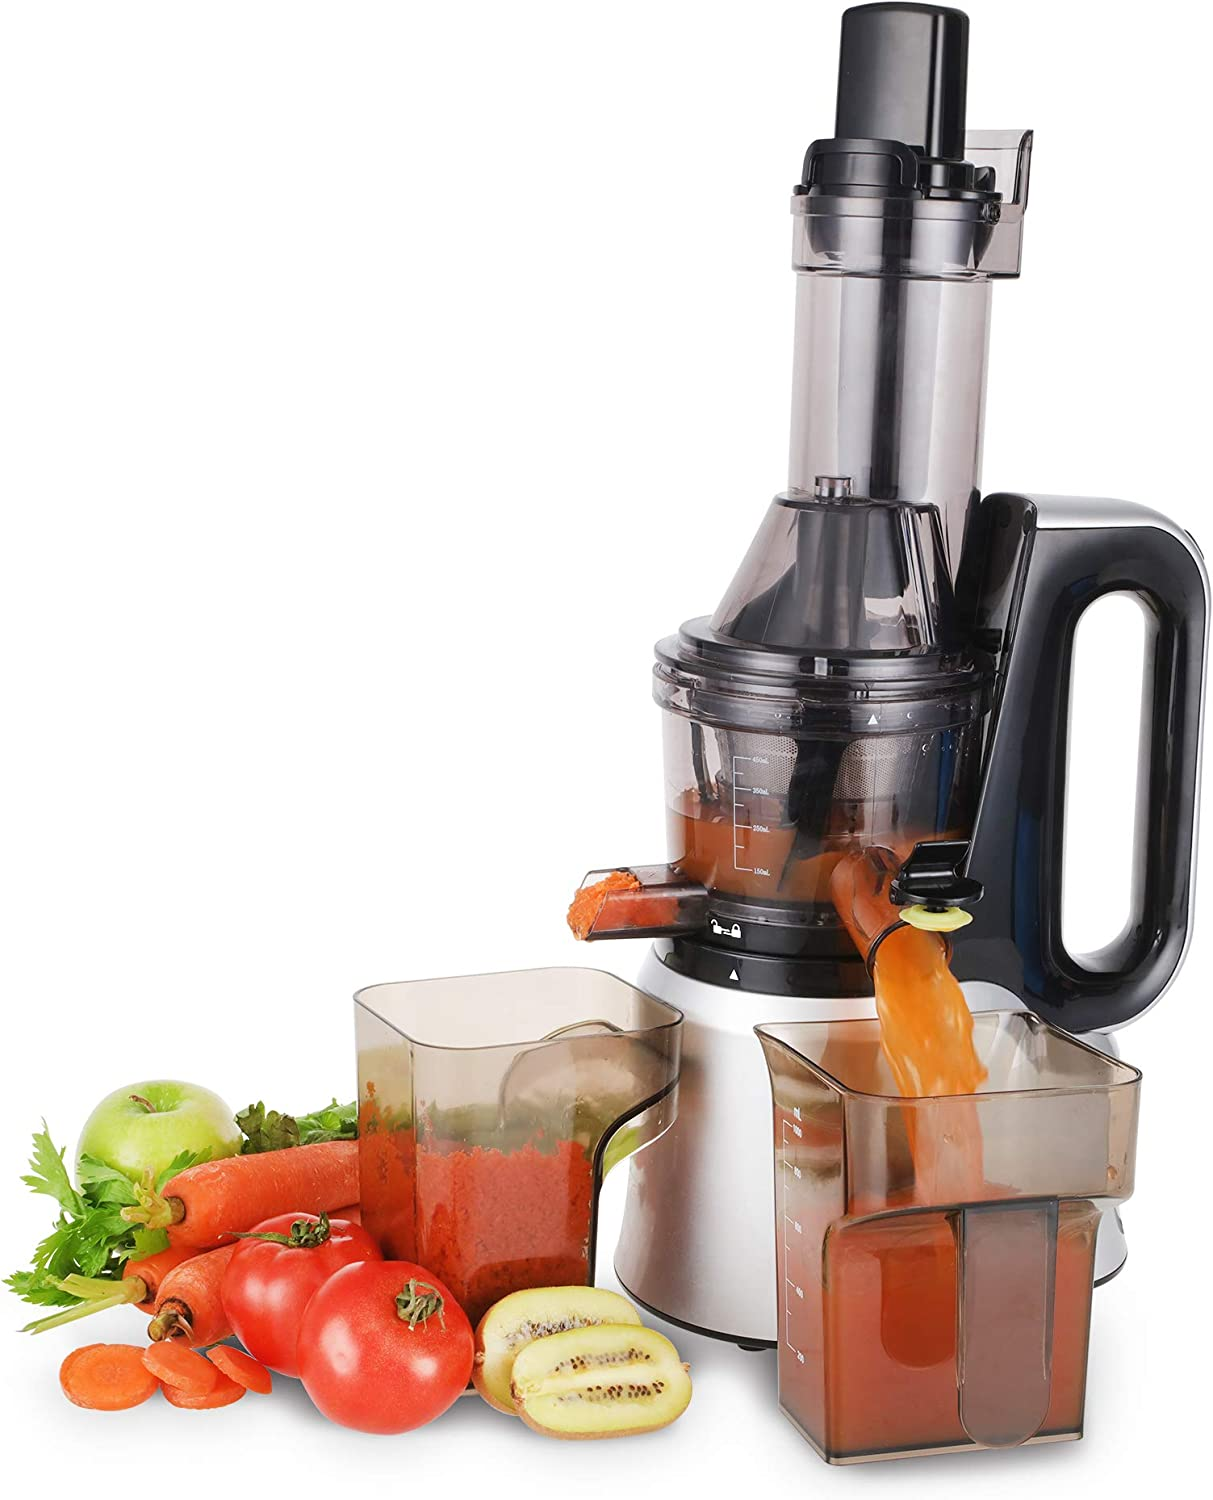 Cusimax CMSJ-800S 240W Slow Juicer,50 RPMs Quiet Fruit Vegetable Masticating Juicer for Highly Efficient Juice Extraction, Sliver